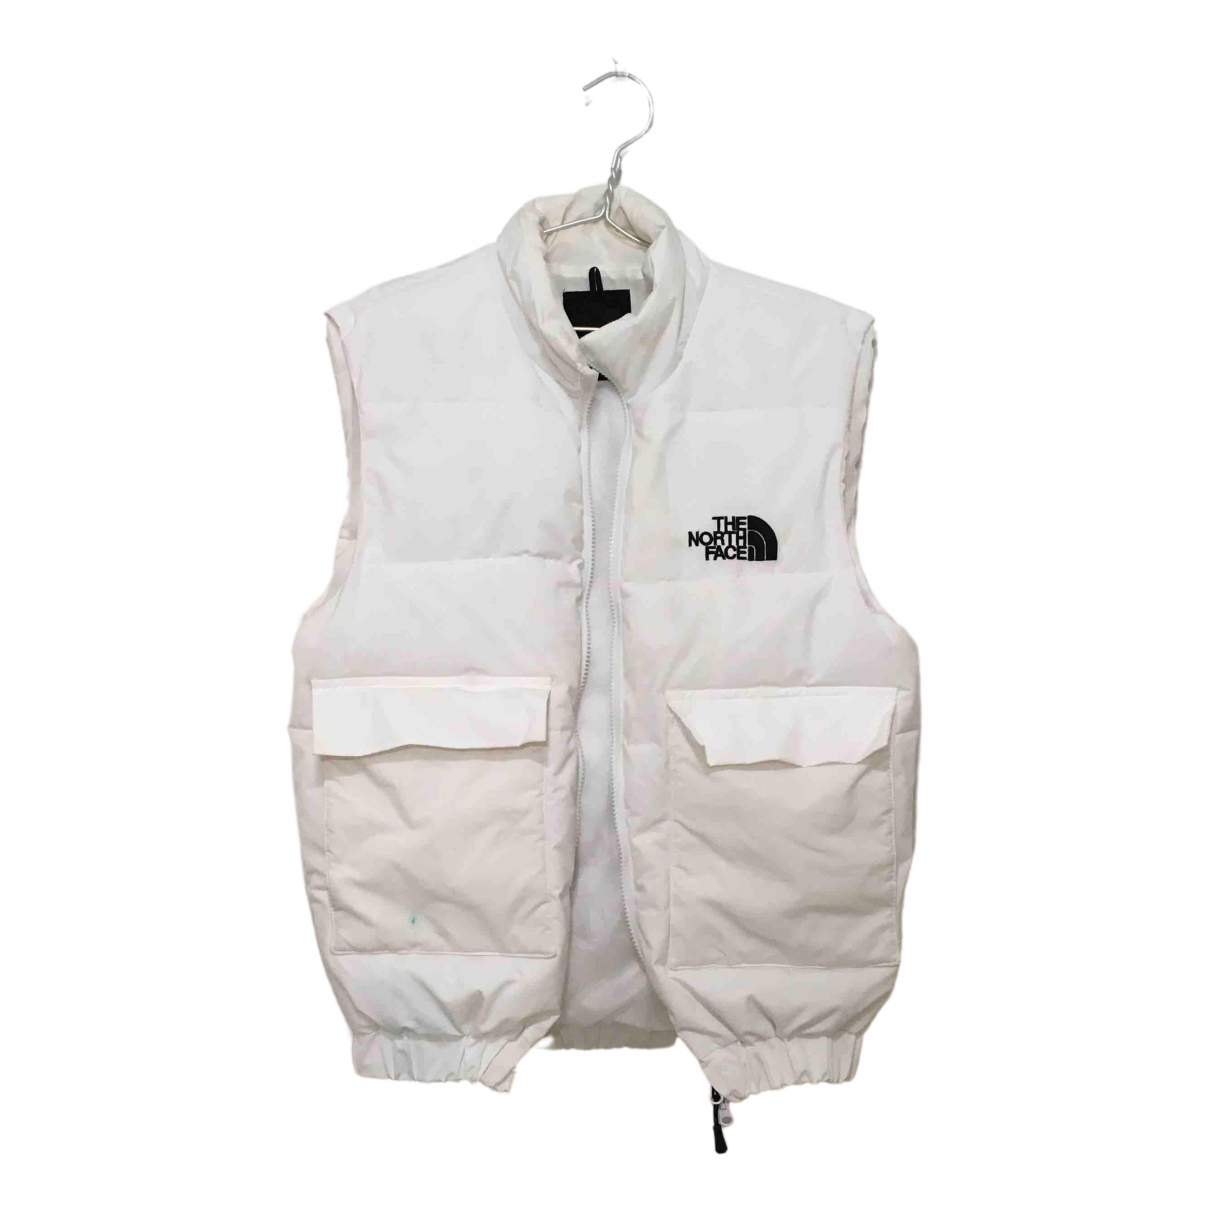 The North Face \N White Cotton jacket for Women M International